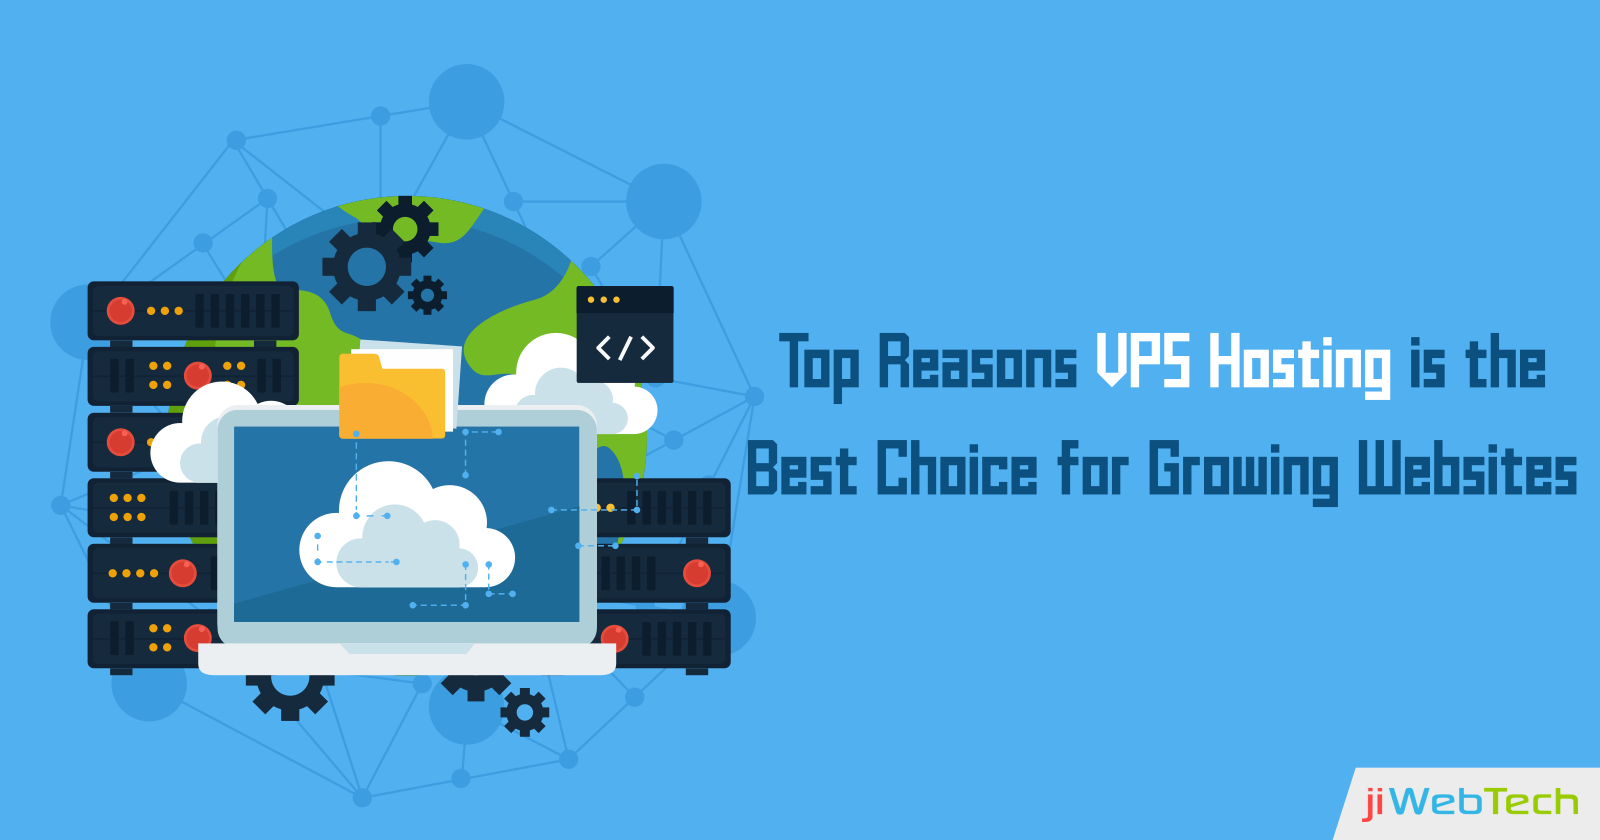 Top Reasons VPS Hosting is the Best Choice for Growing Websites